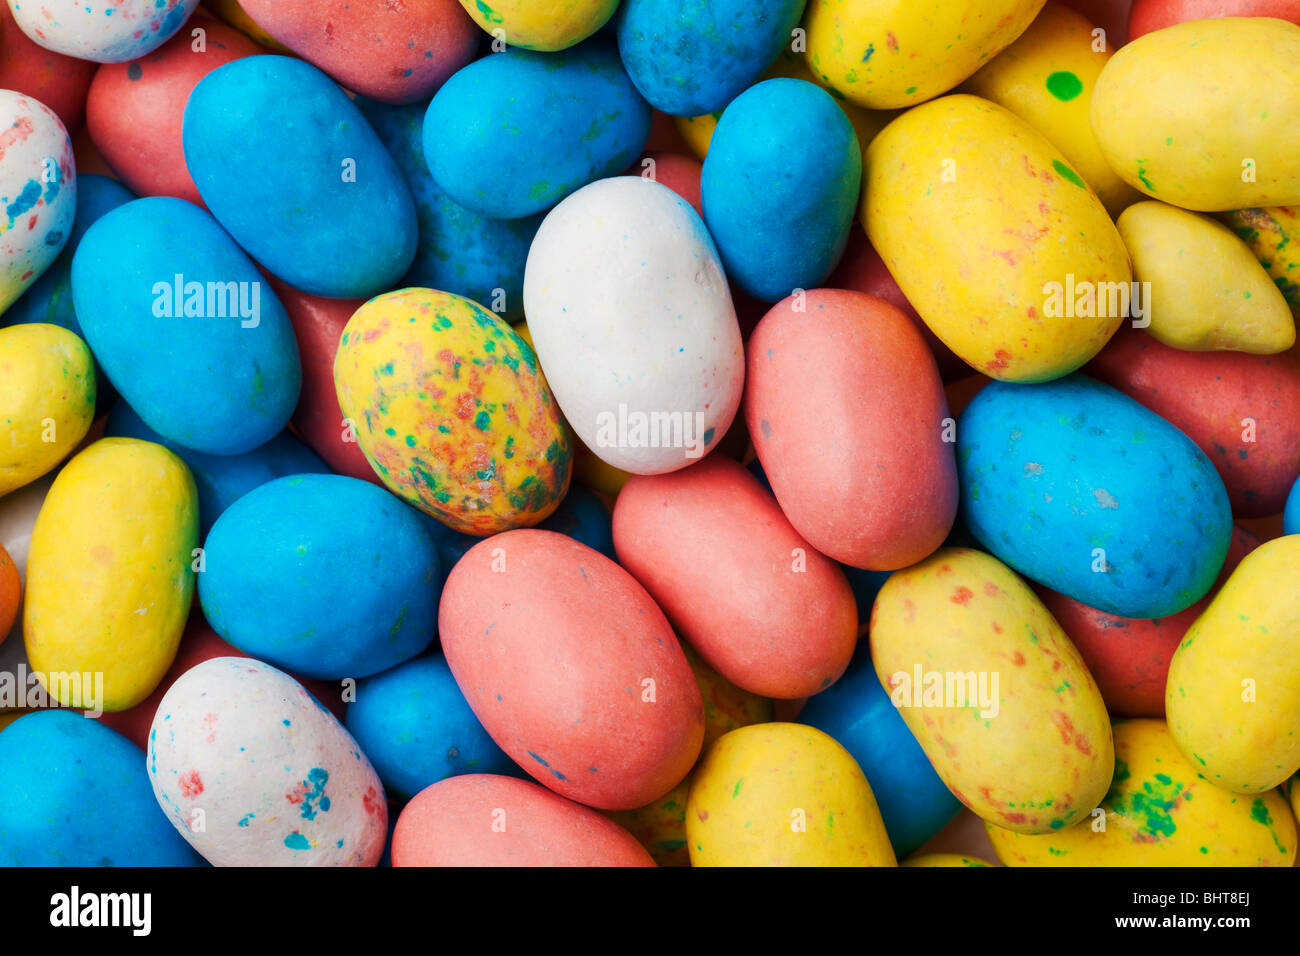 speckled eggs multi colored backdrop or background - Stock Image